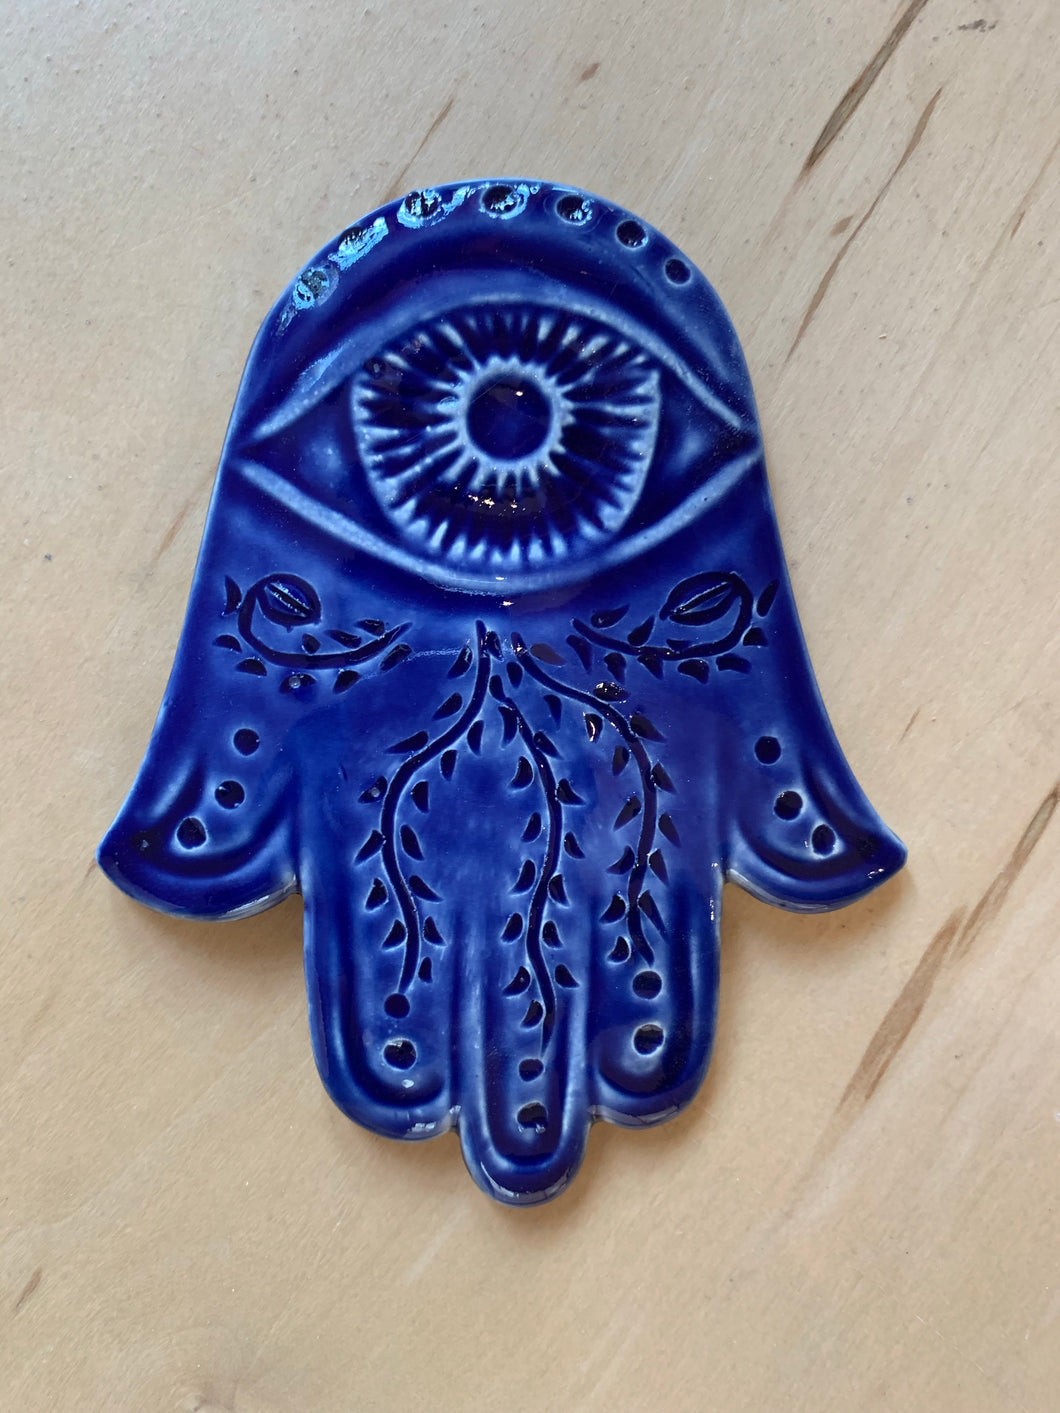 Hamsa wall hanging in cobalt blue with vine patterns carved in. ceramic, approximately 5